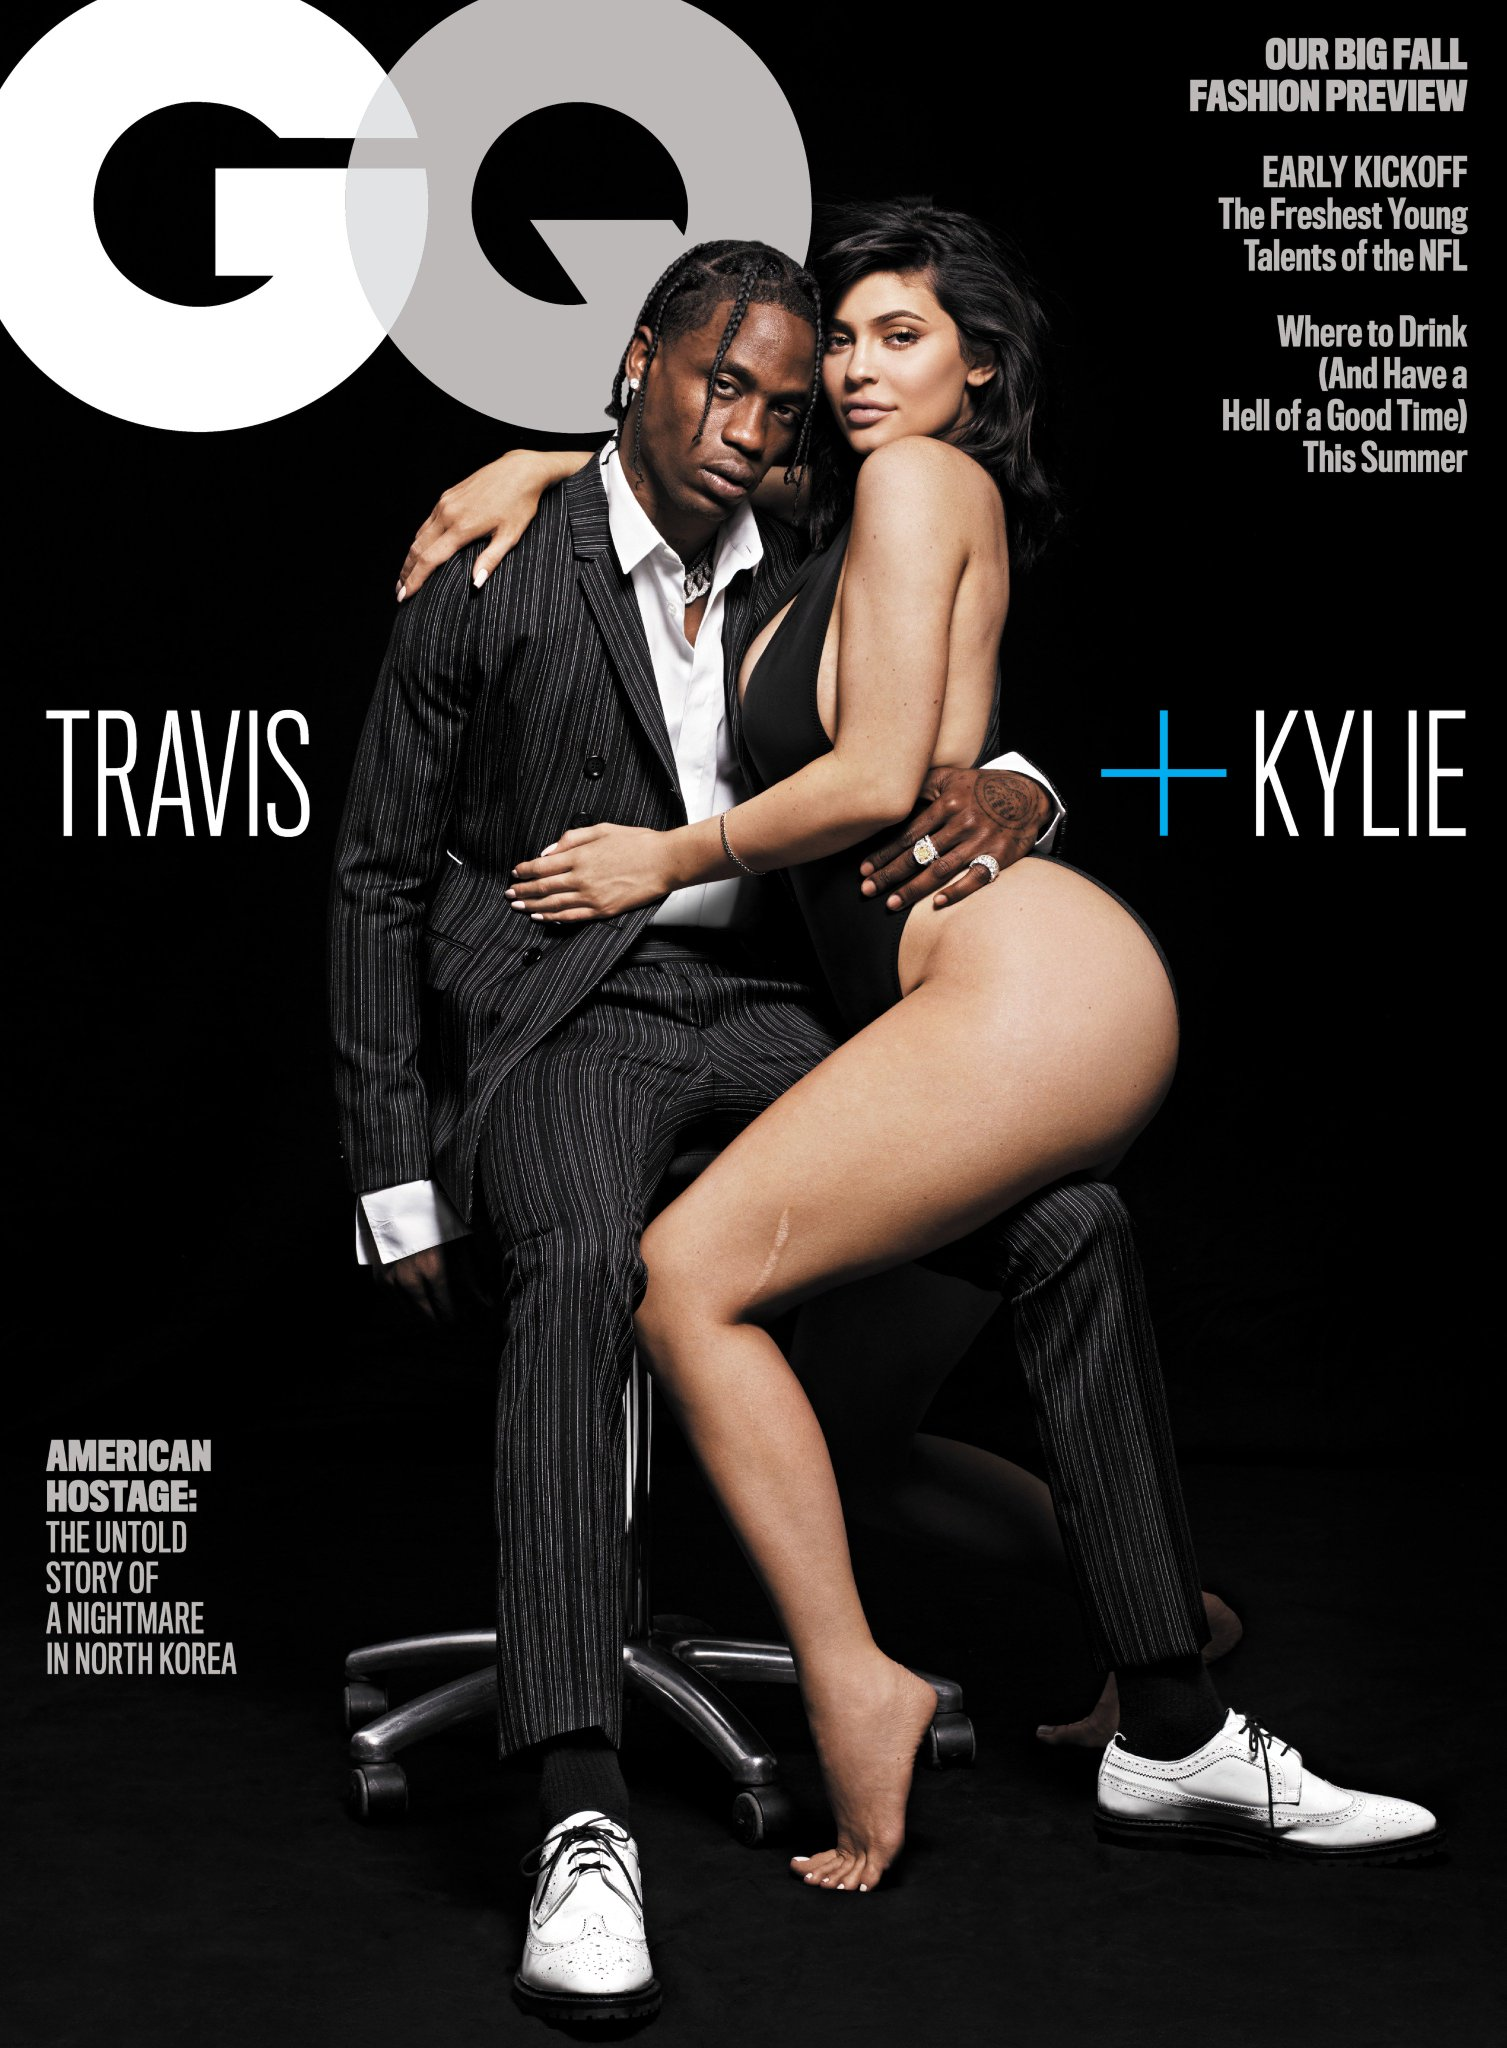 Presenting GQ's newest cover stars: @KylieJenner and @trvisXX https://t.co/vWLD1hNHfE https://t.co/92FOBicDBZ